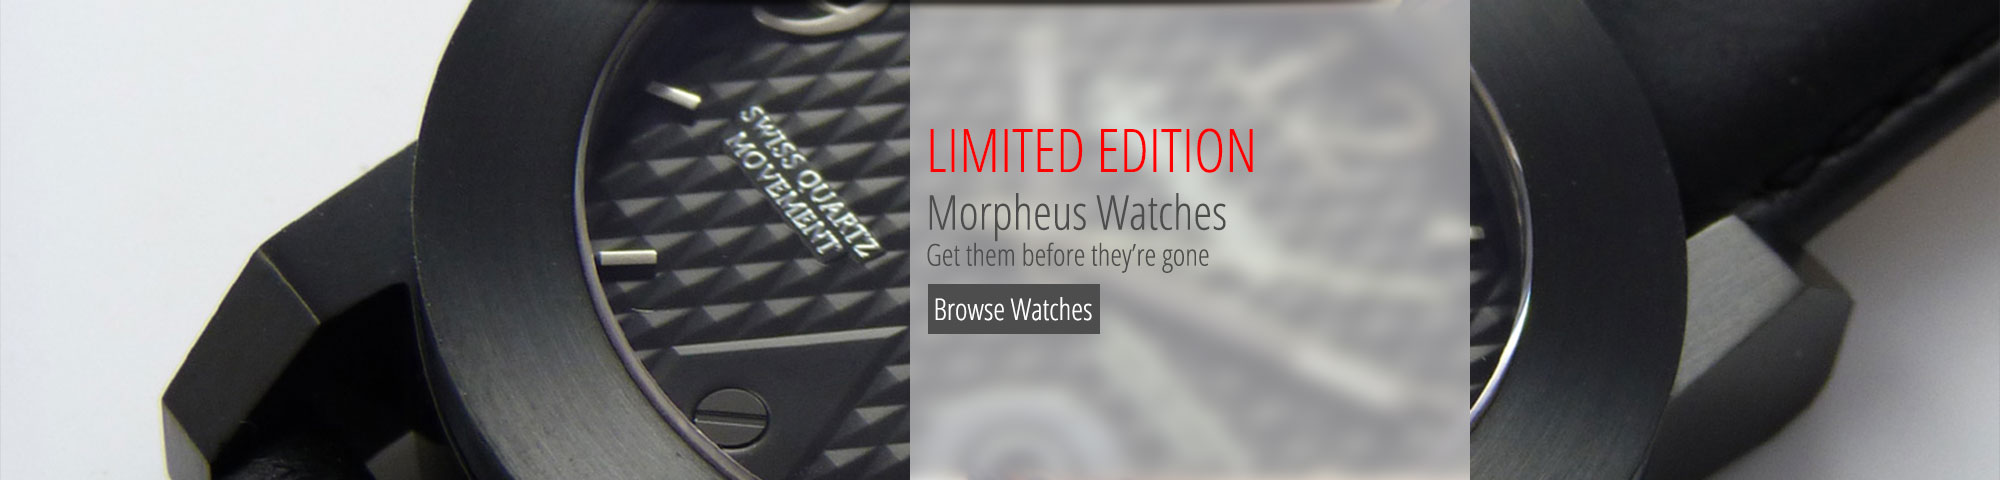 Morpheus Watches